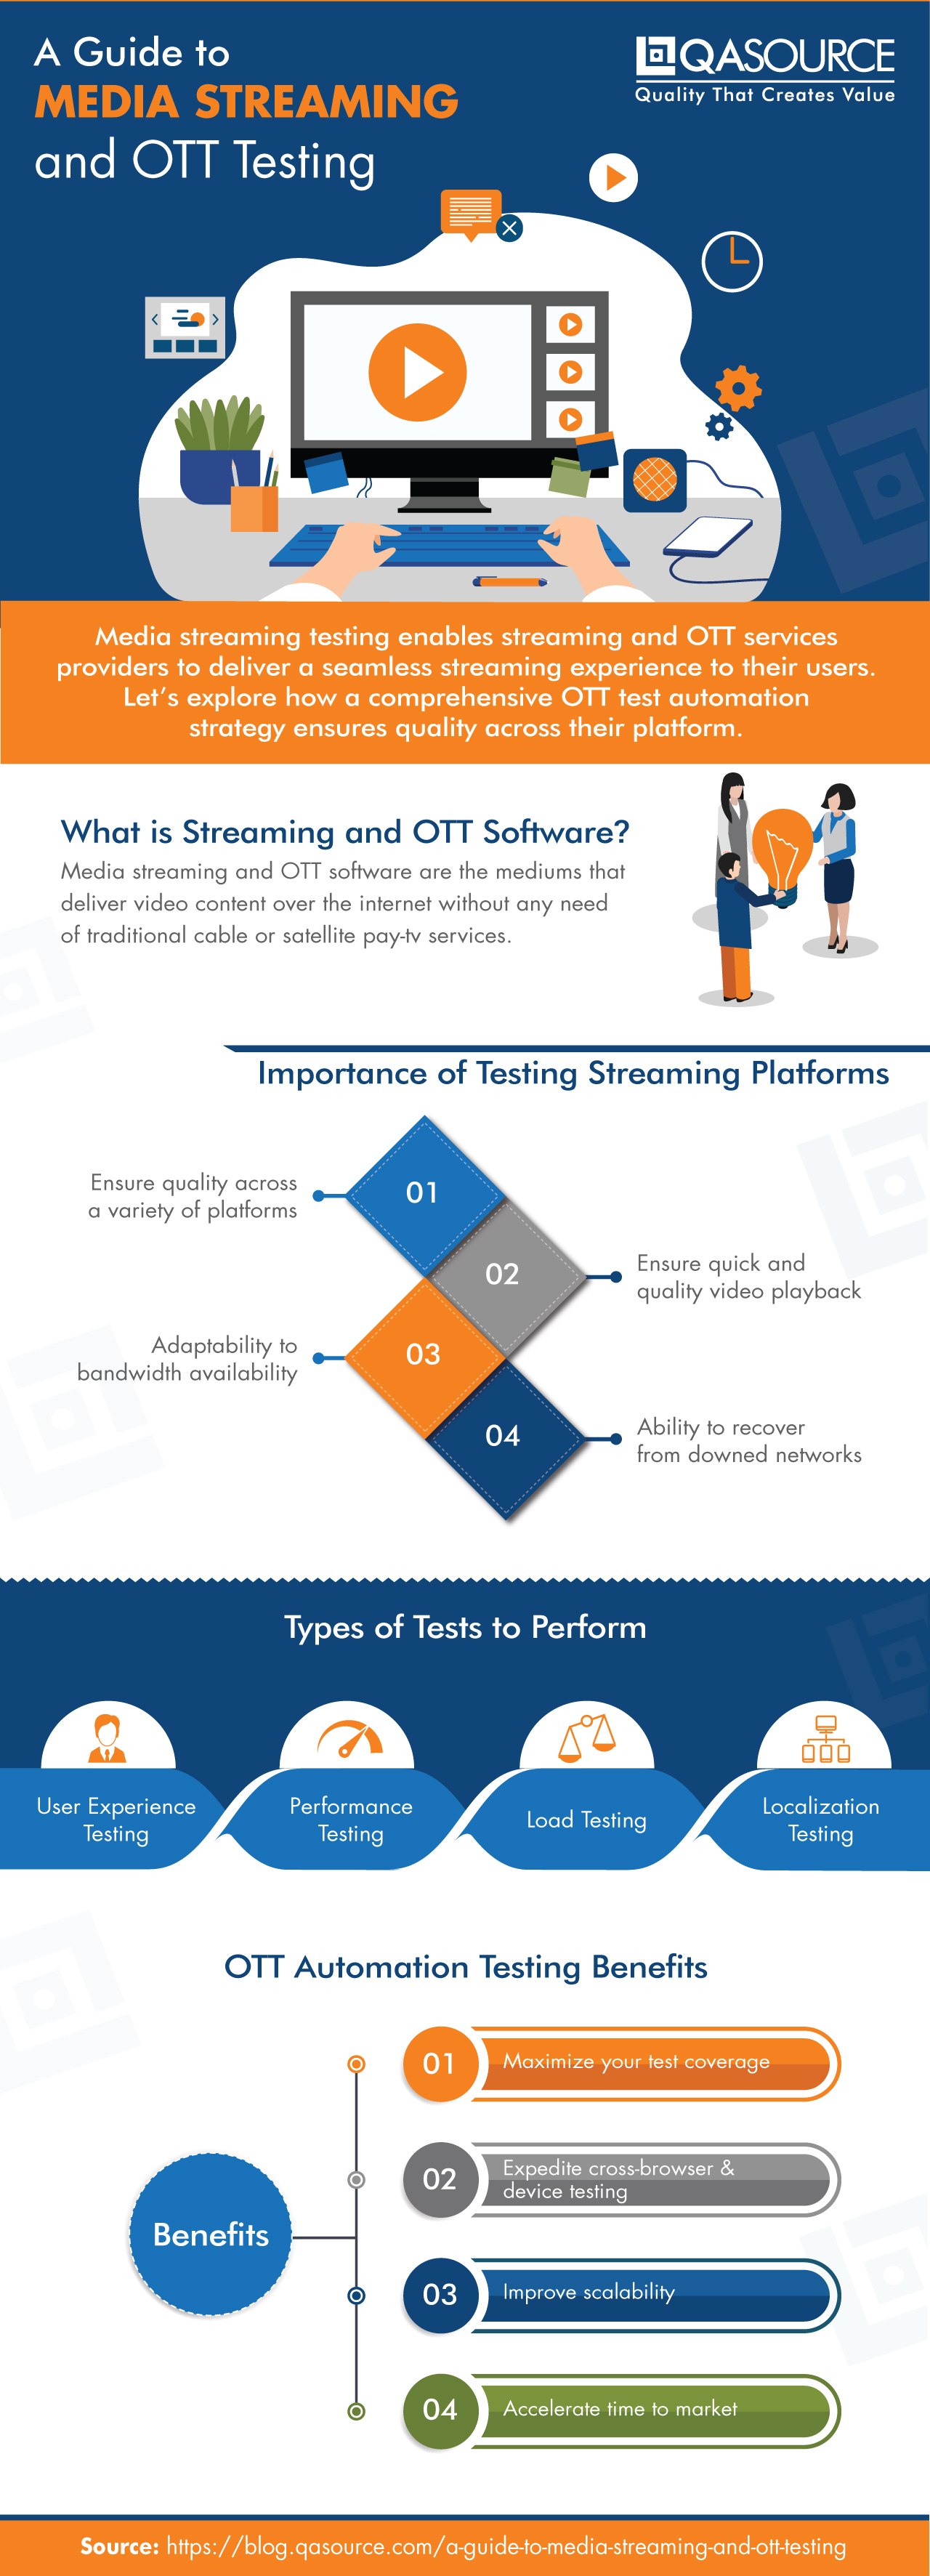 A Guide to Media Streaming and OTT Testing (Infographic)